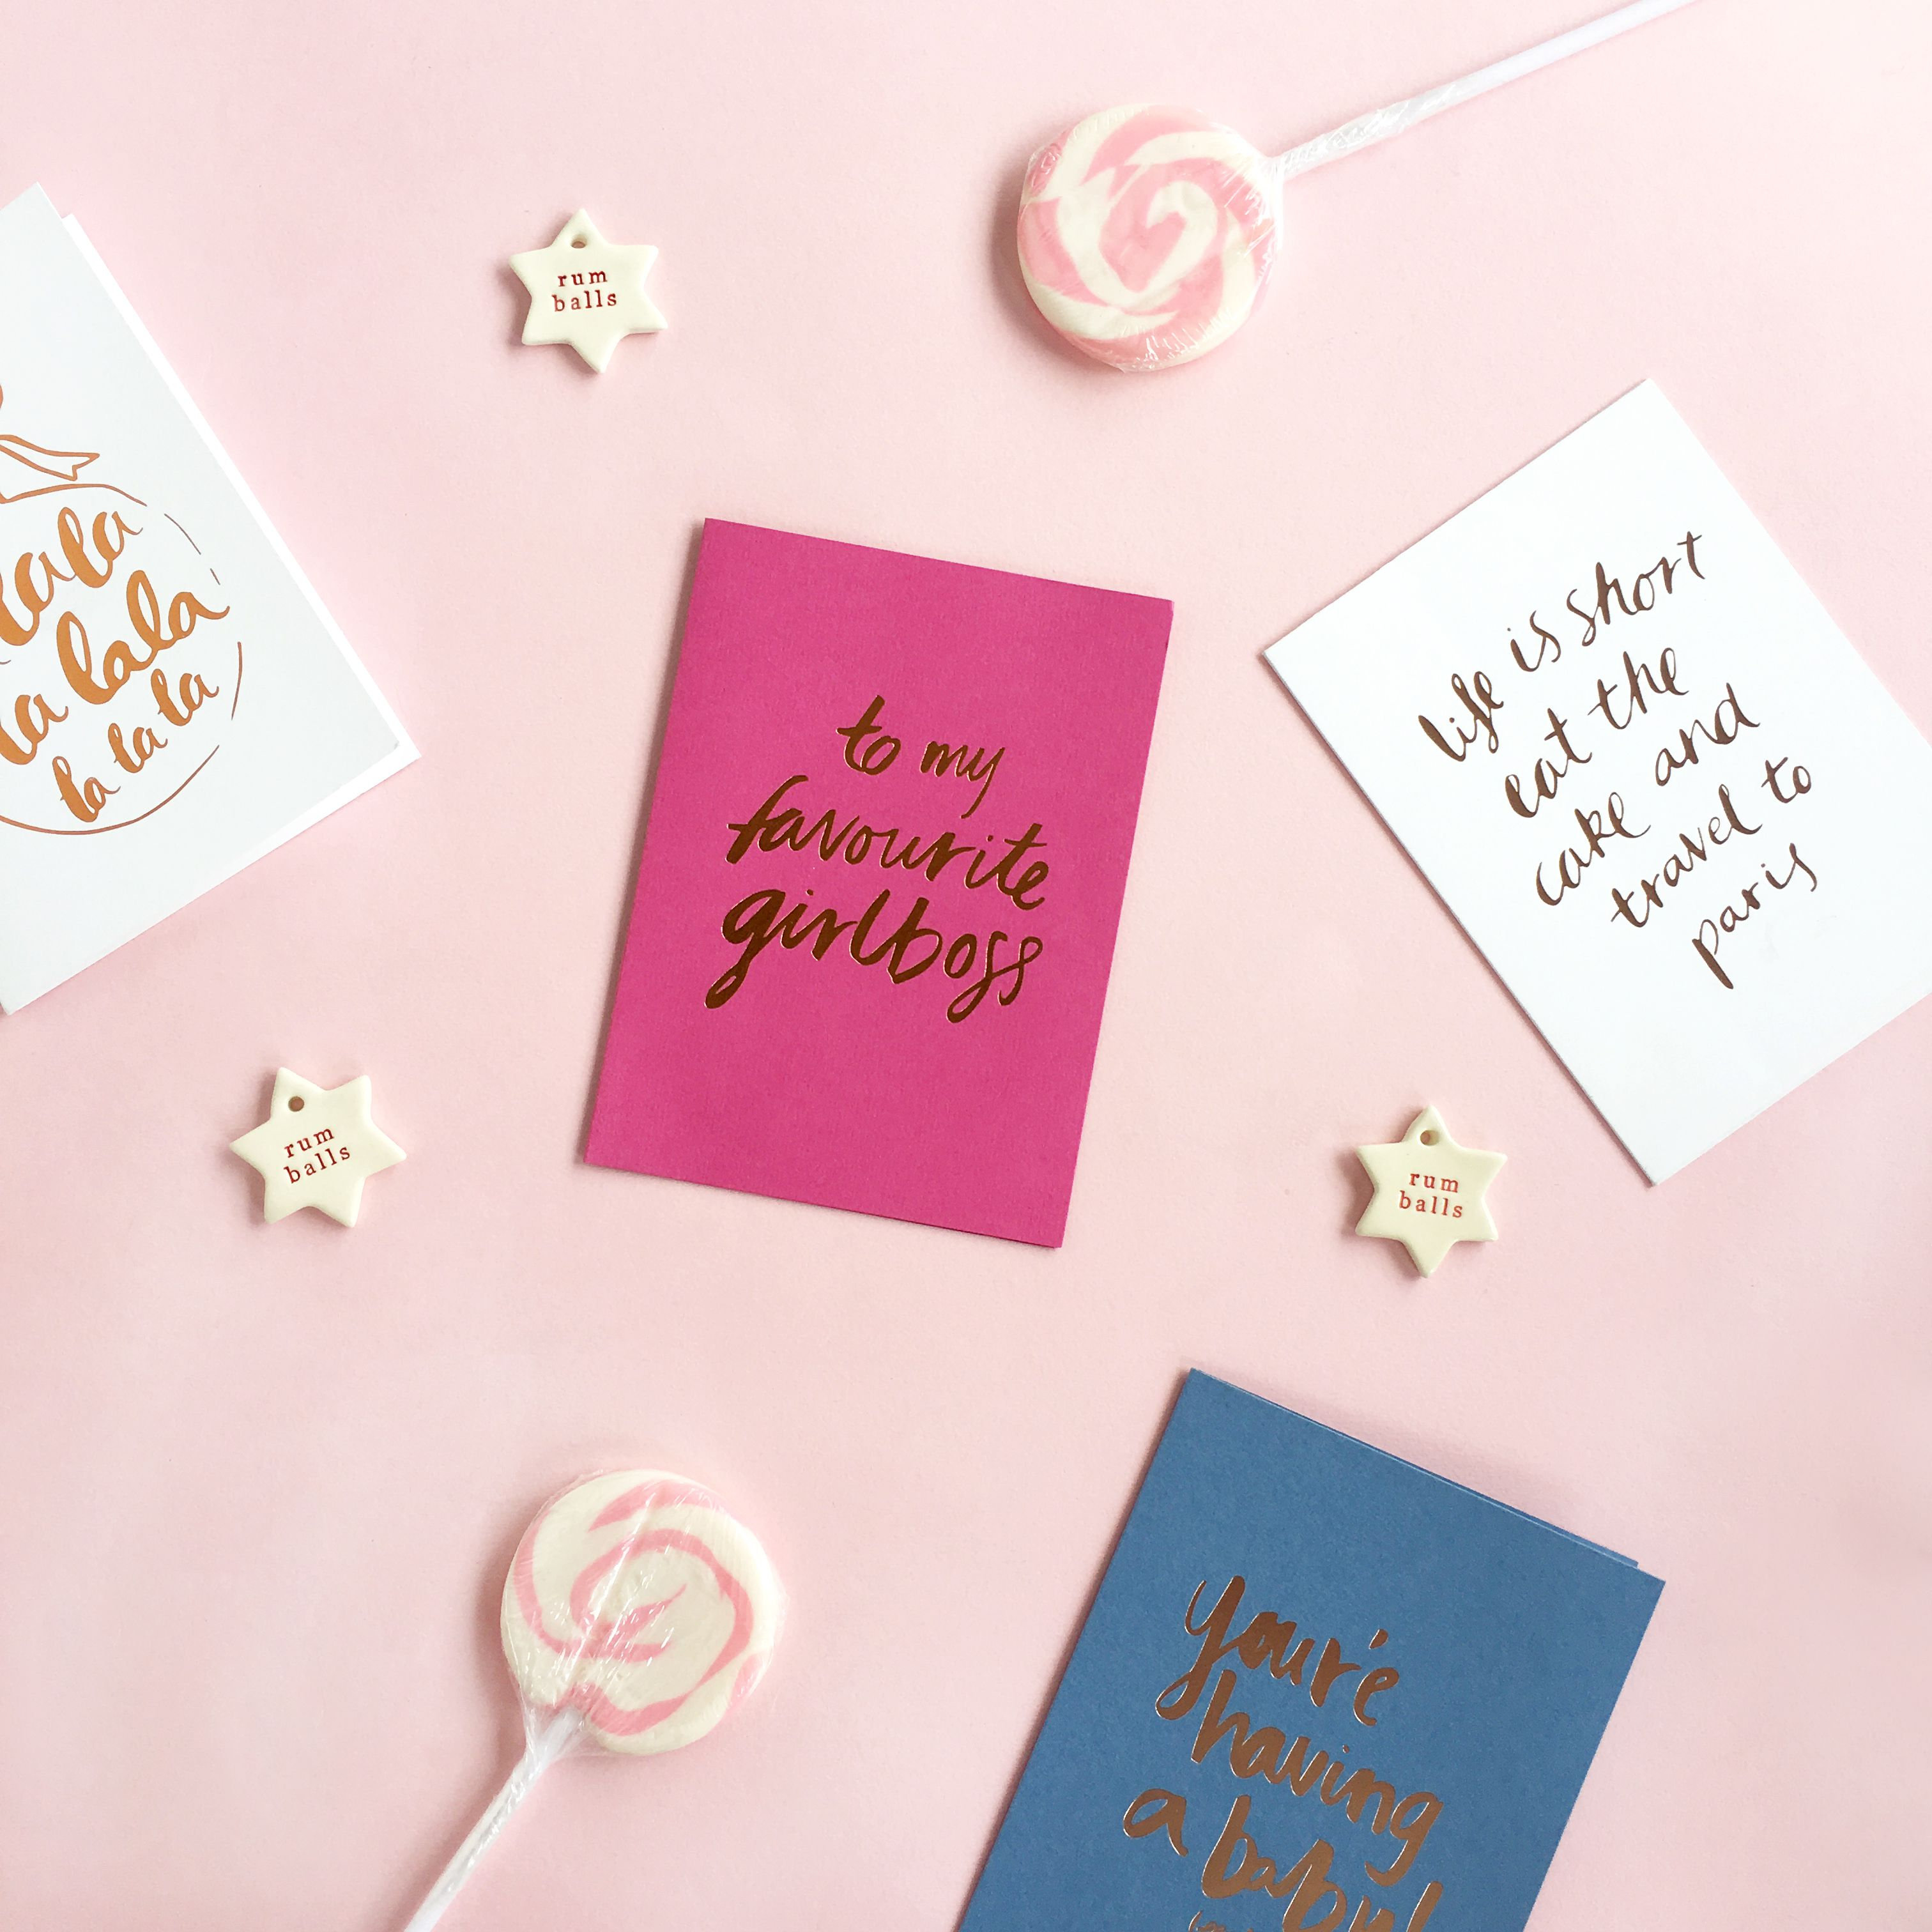 To My Favourite Girl Boss... How Cool Are These Cards